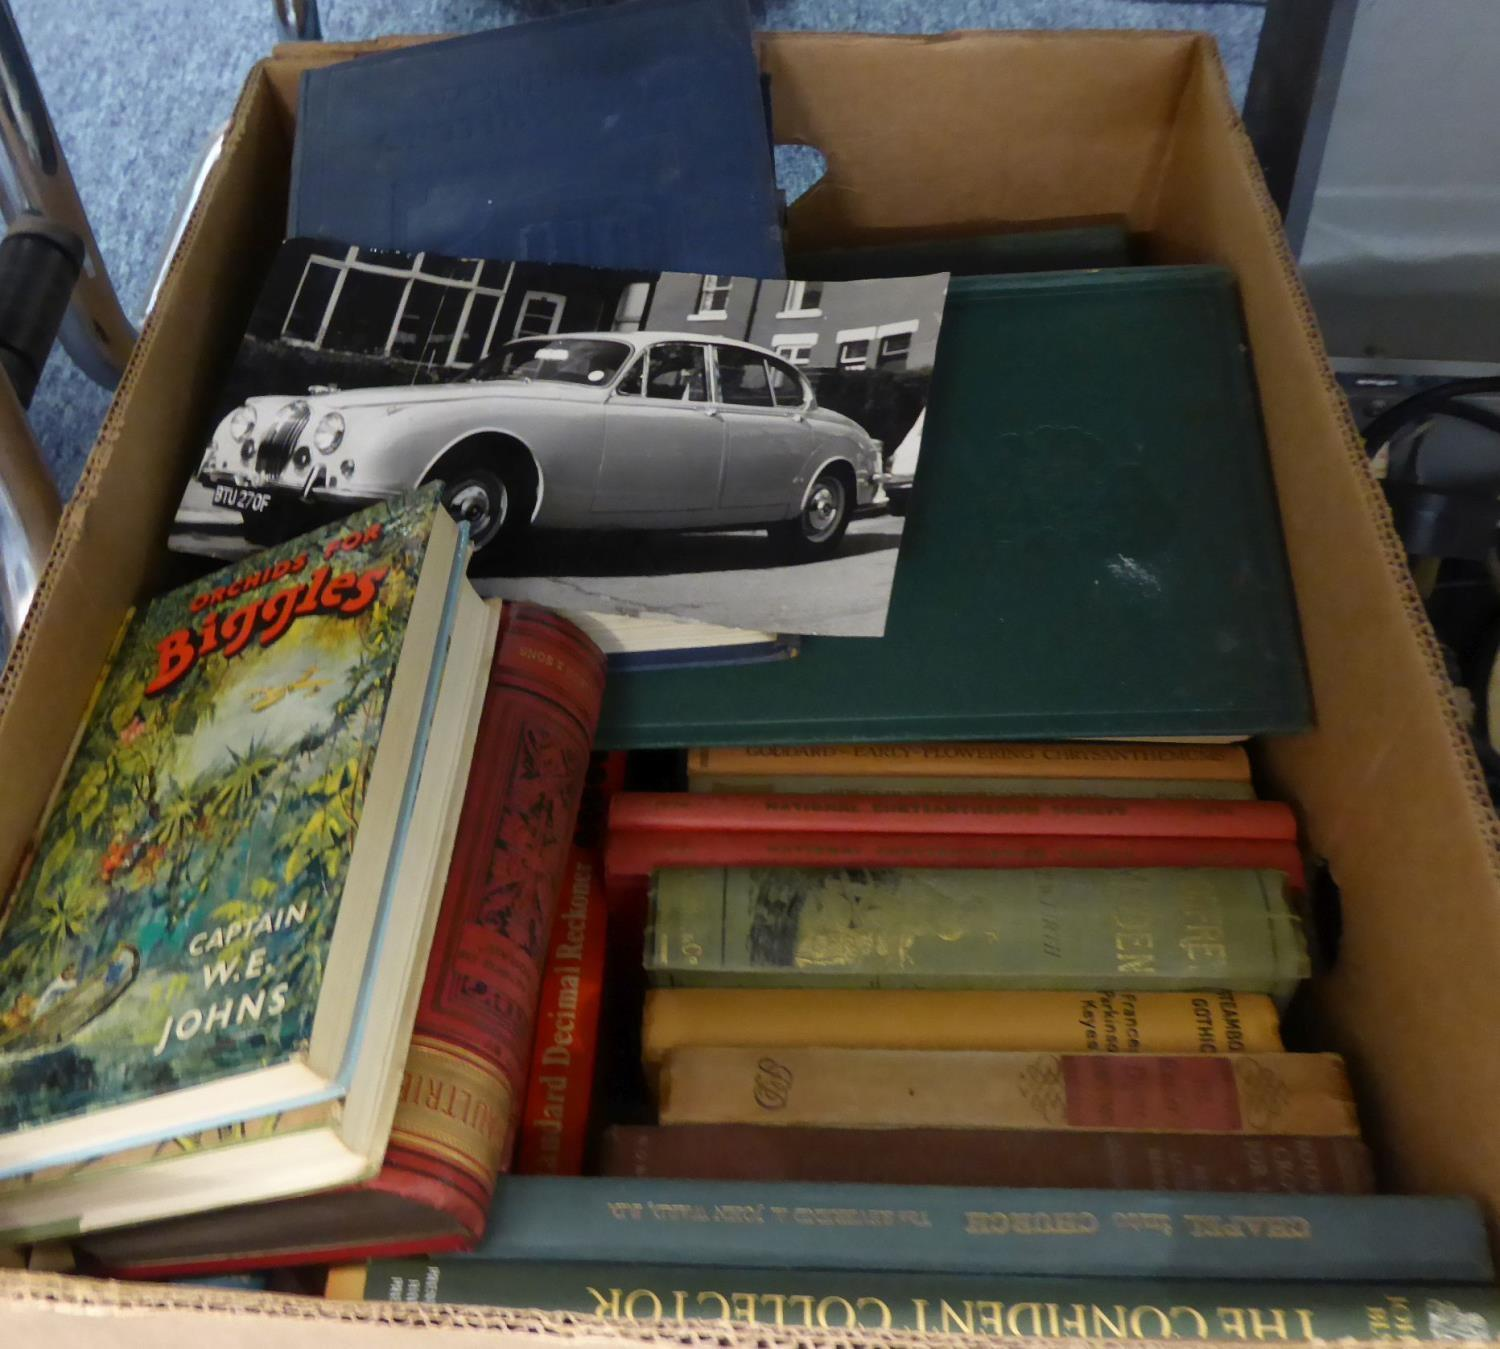 Lot 414 - ONE BOX OF BOOKS, VARIOUS AUTHORS SUNDRY WORKS